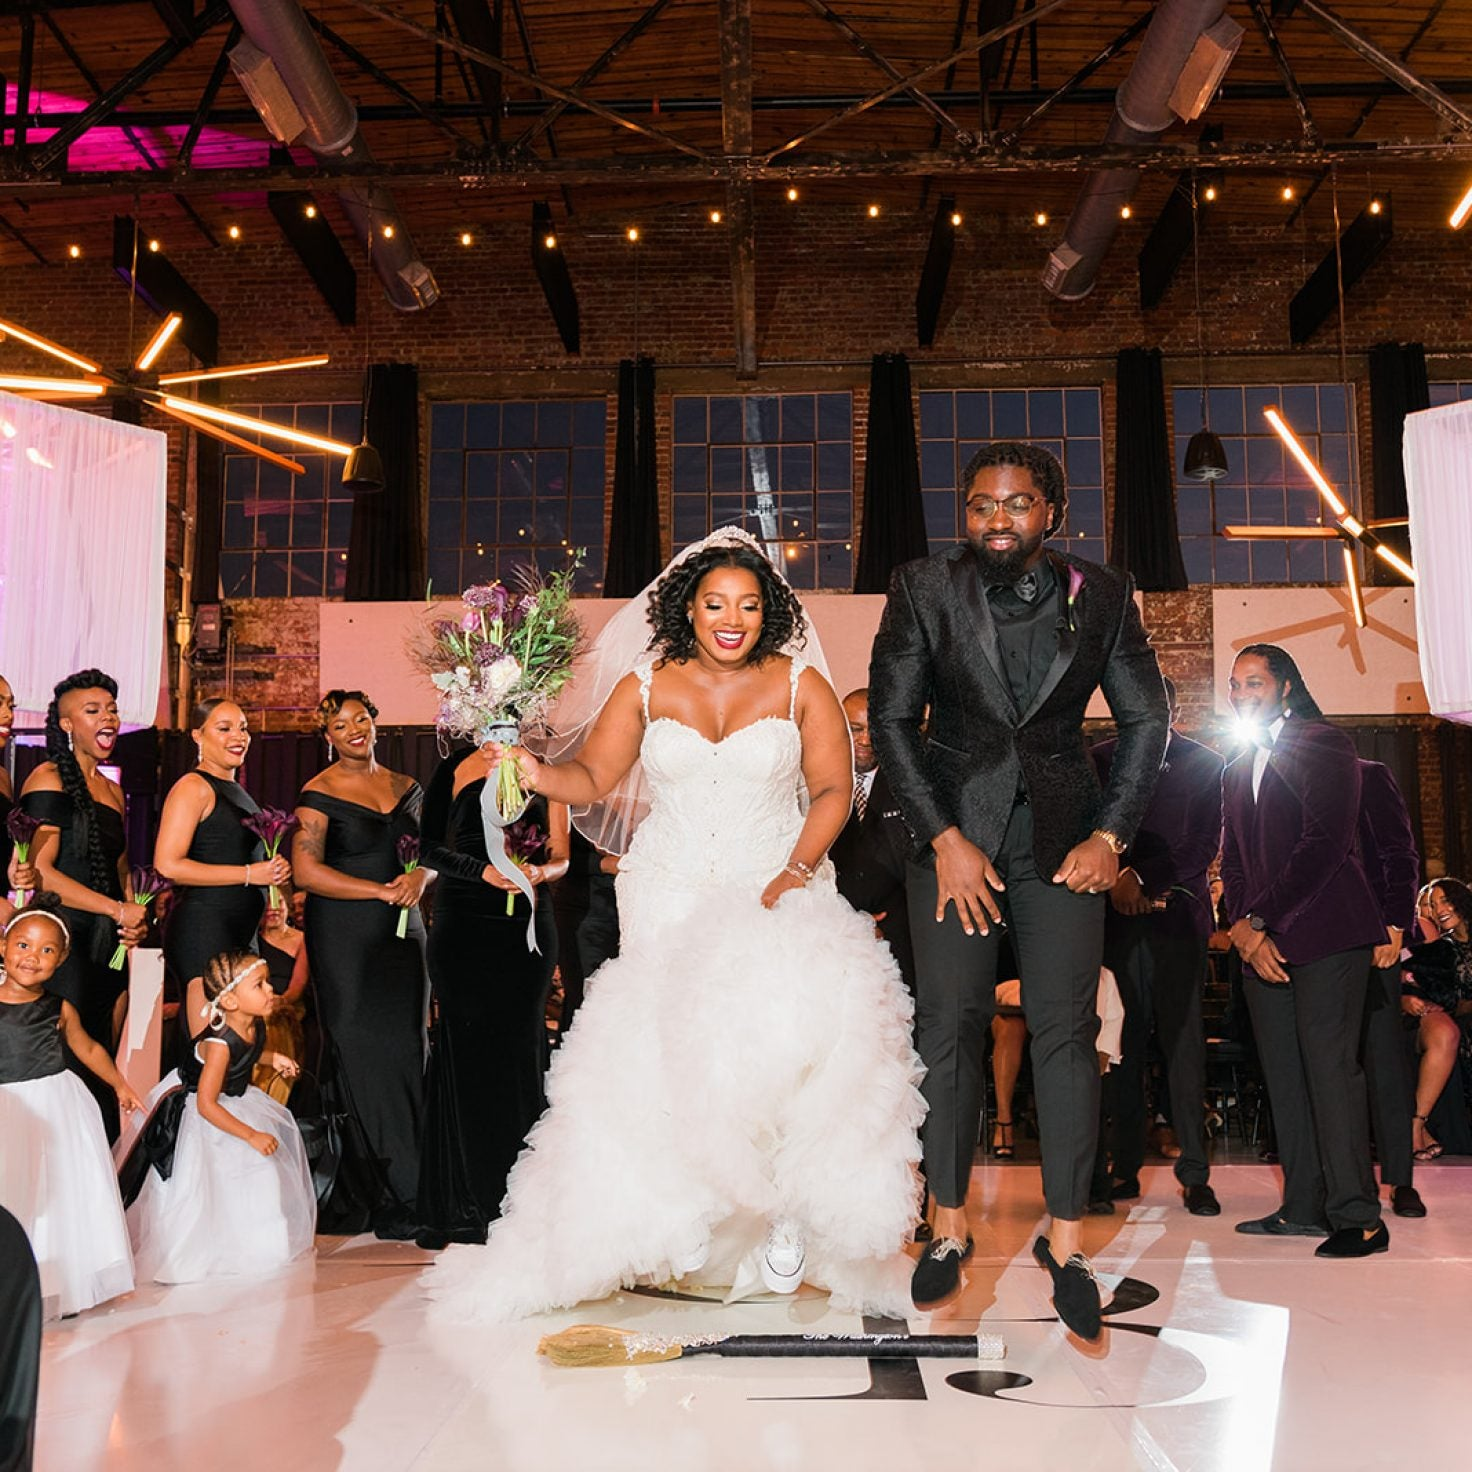 Bridal Bliss: Brandon and Brea Jumped The Broom In Style